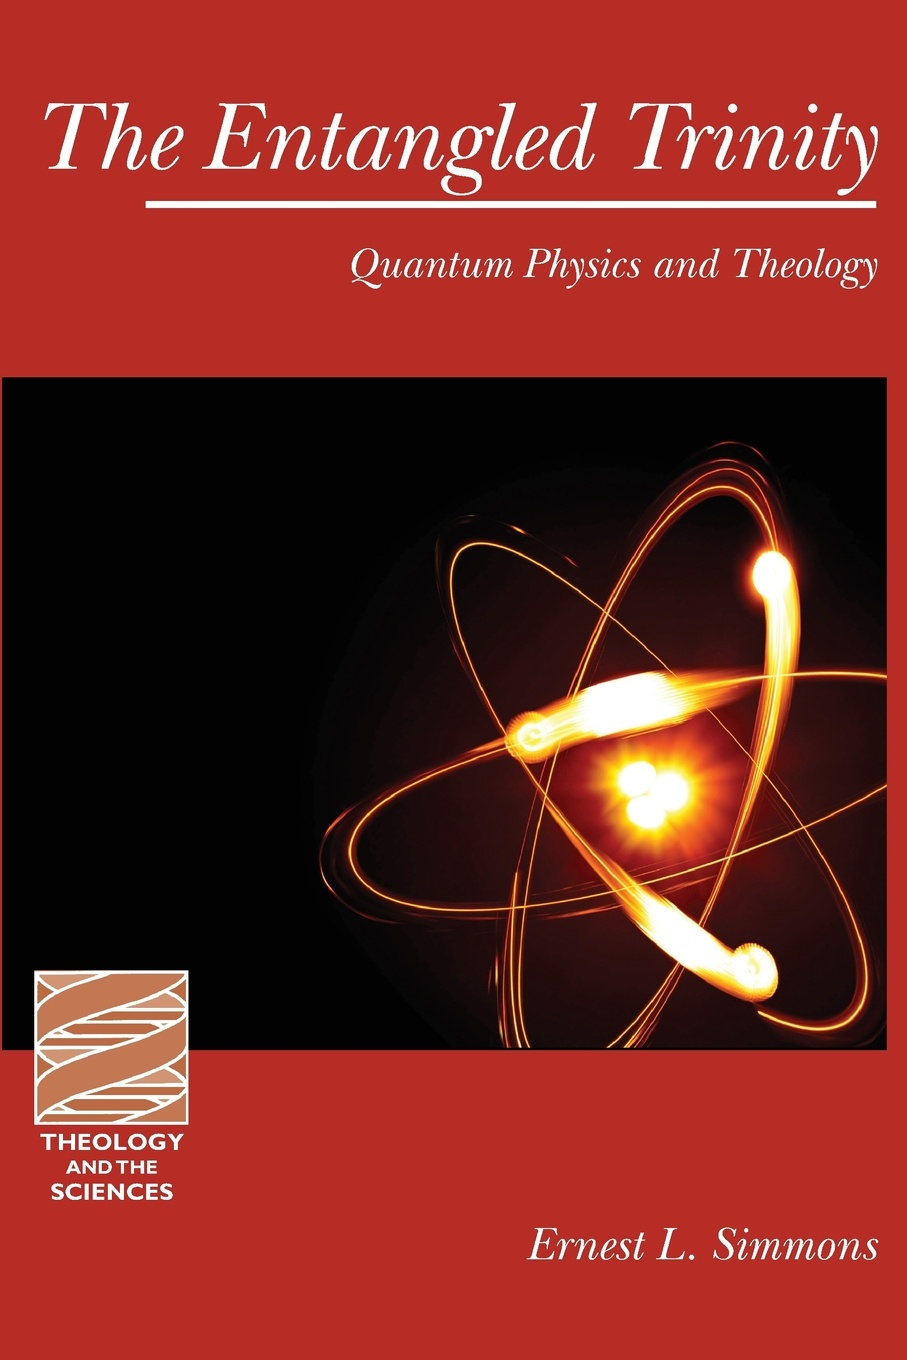 Ernest L. Simmons The Entangled Trinity. Quantum Physics and Theology steven holzner quantum physics workbook for dummies